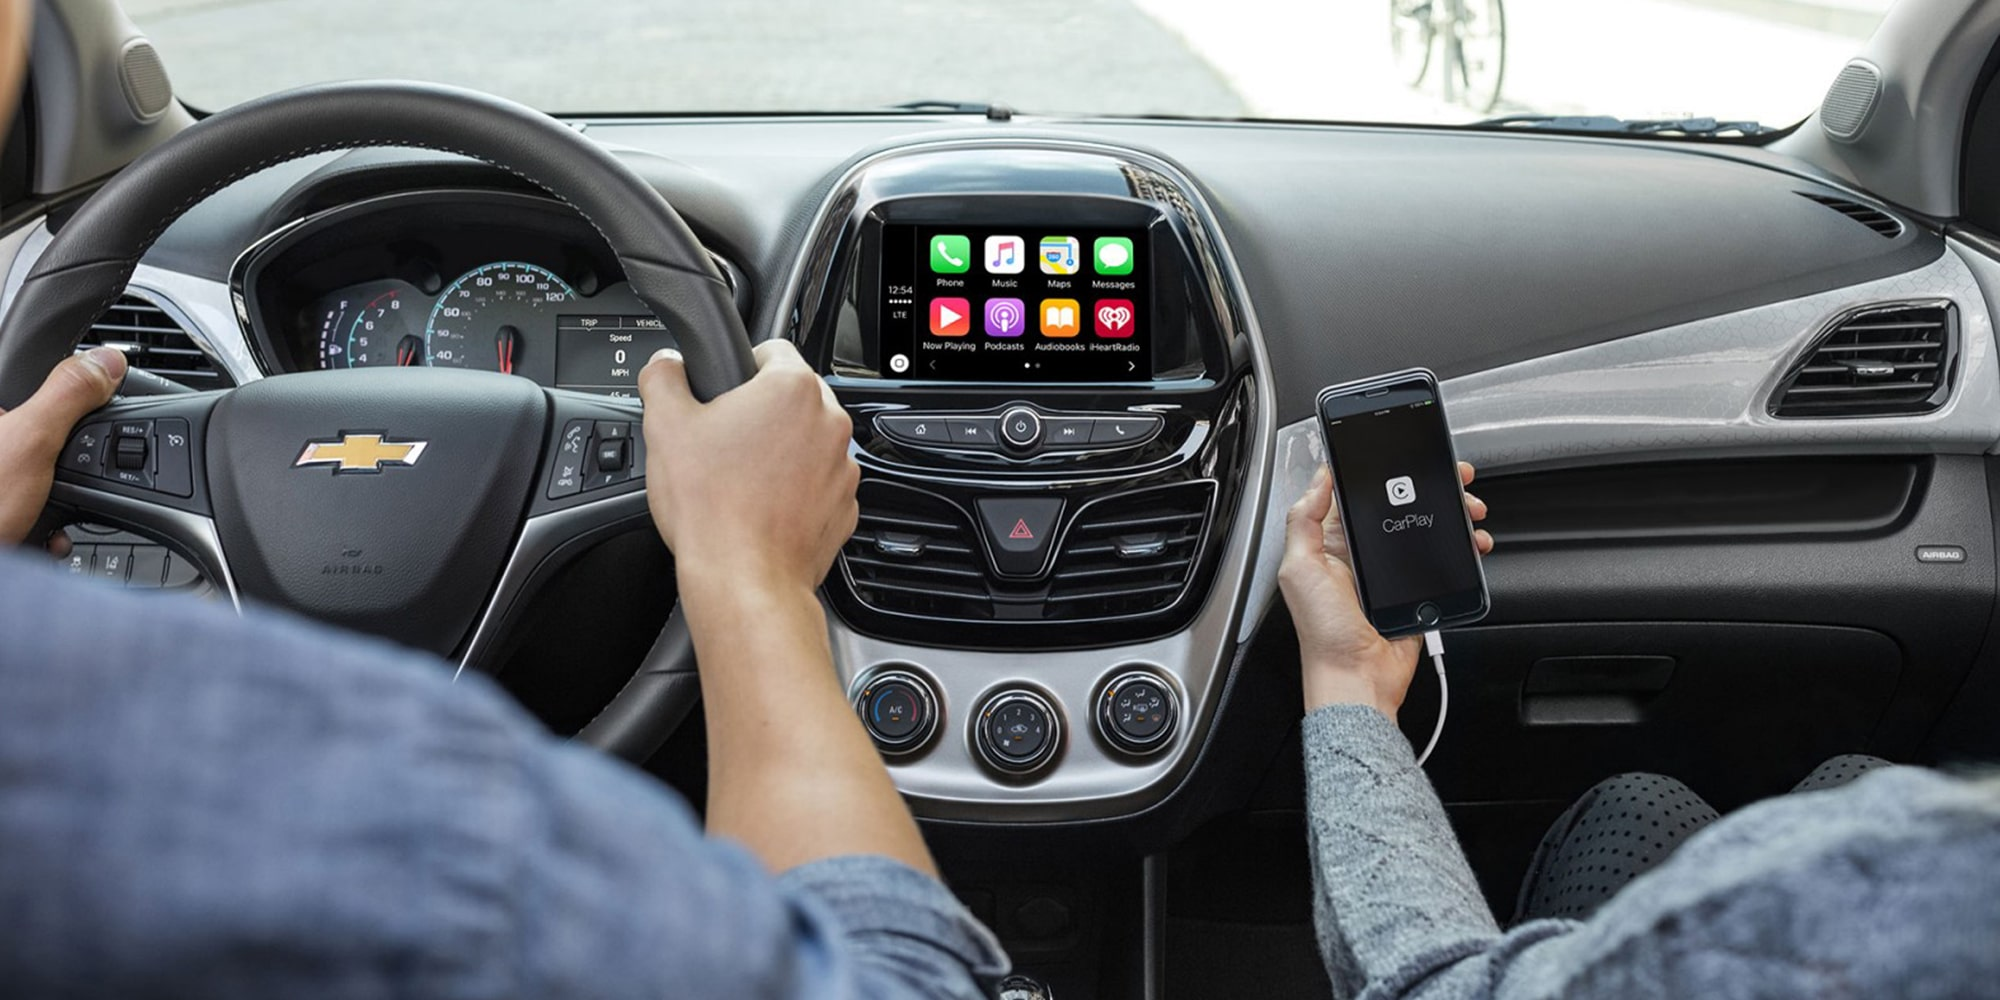 Chevrolet 2018 Spark City Car Technology: Apple Carplay